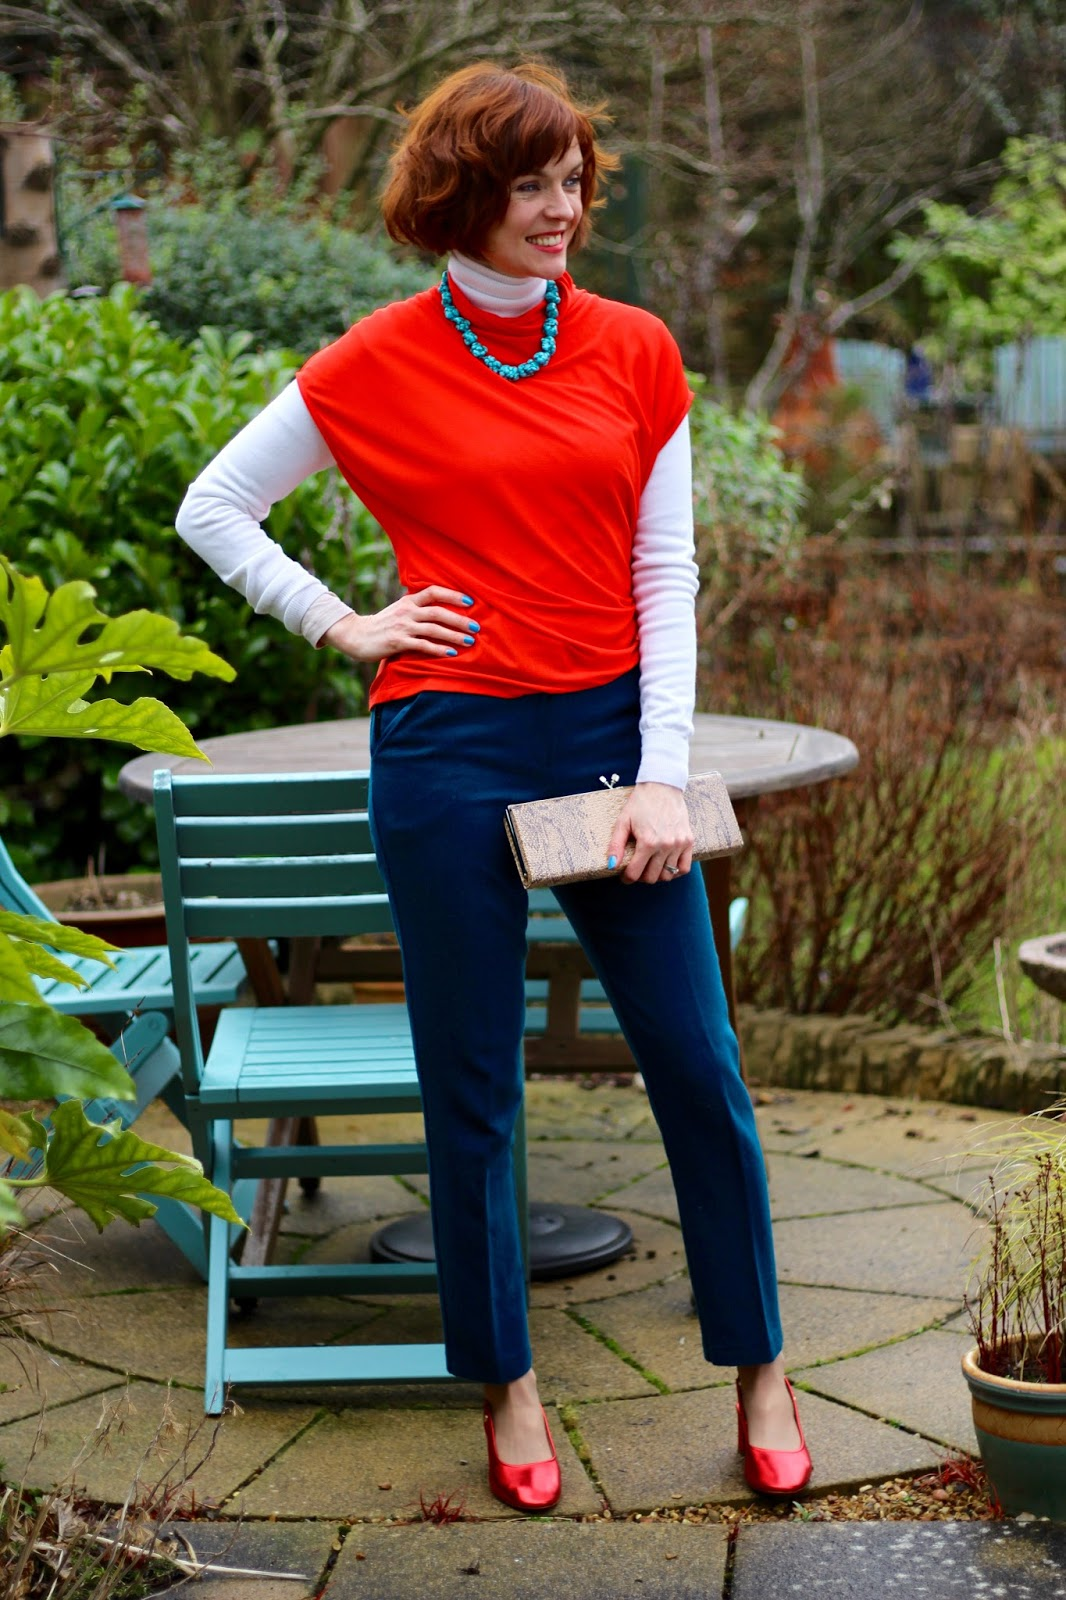 Metallic Red Slingback Nana Shoes & Teal Wool Trousers |Fake Fabulous